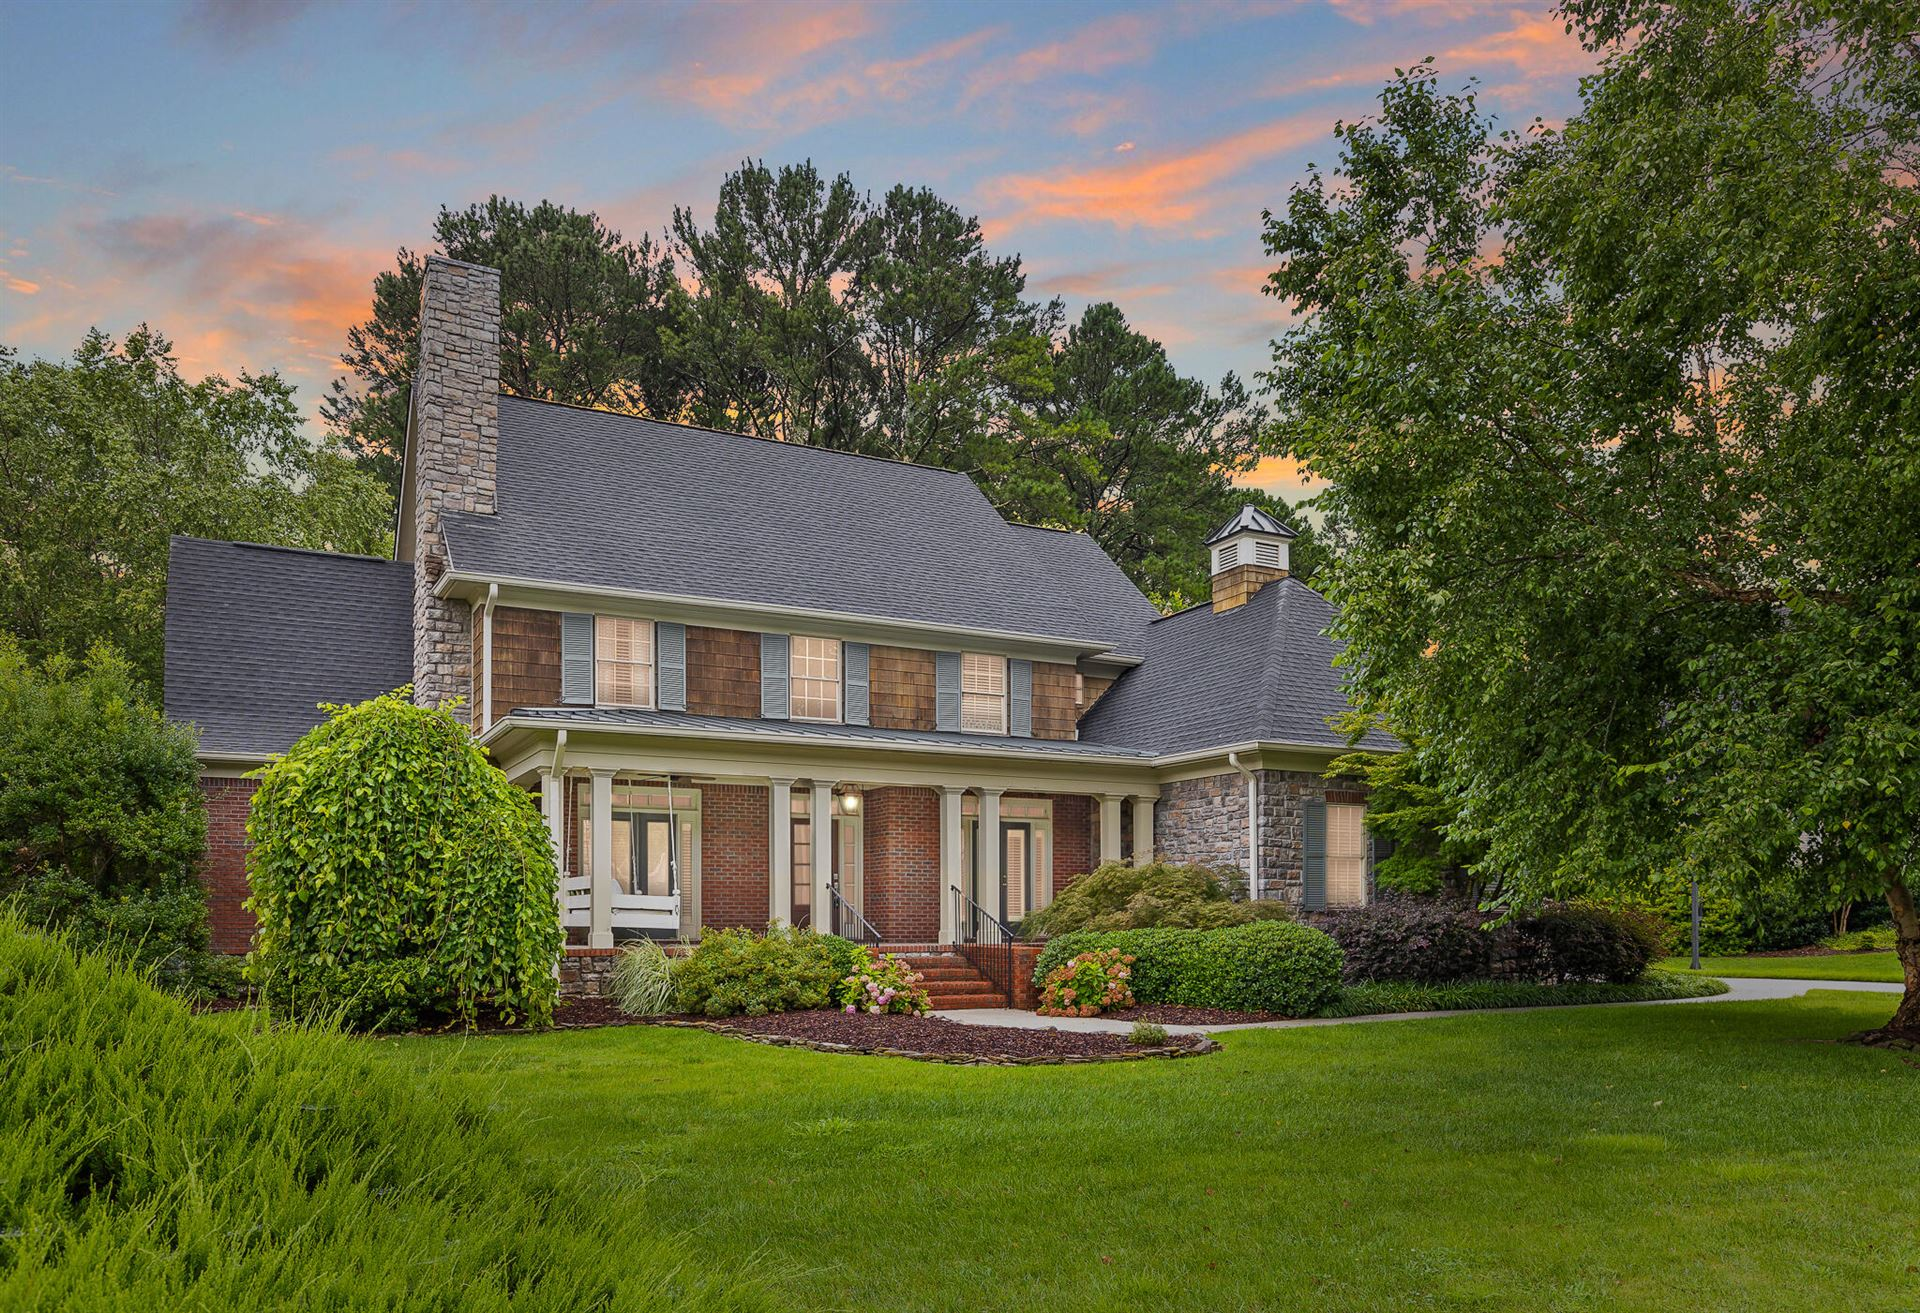 Photo for 1271 Enclave Rd, Chattanooga, TN 37415 (MLS # 1339929)